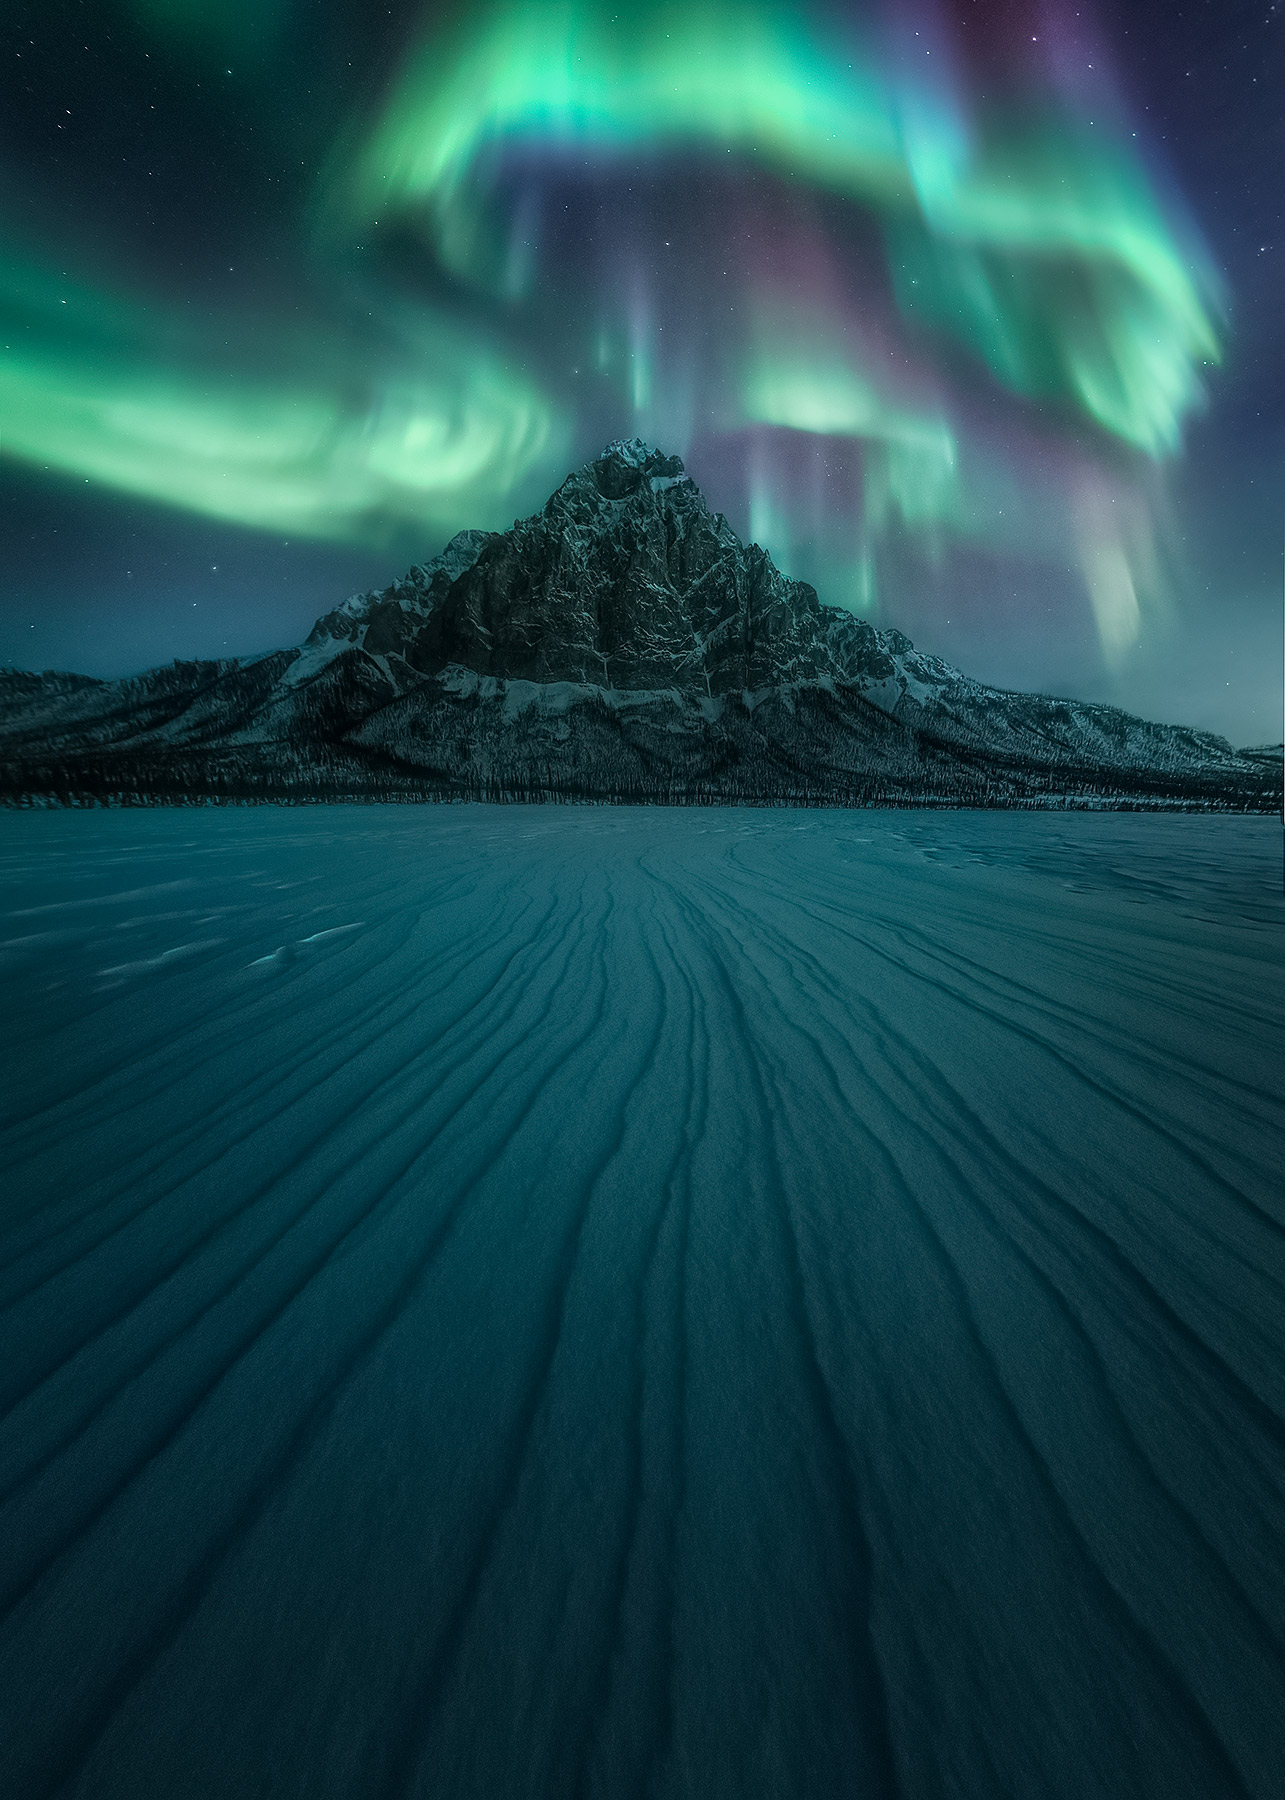 Sastrugi lines in the compacted snow make for some fascinating views atop a frozen lake in Arctic Alaska, complimenting the aurora...